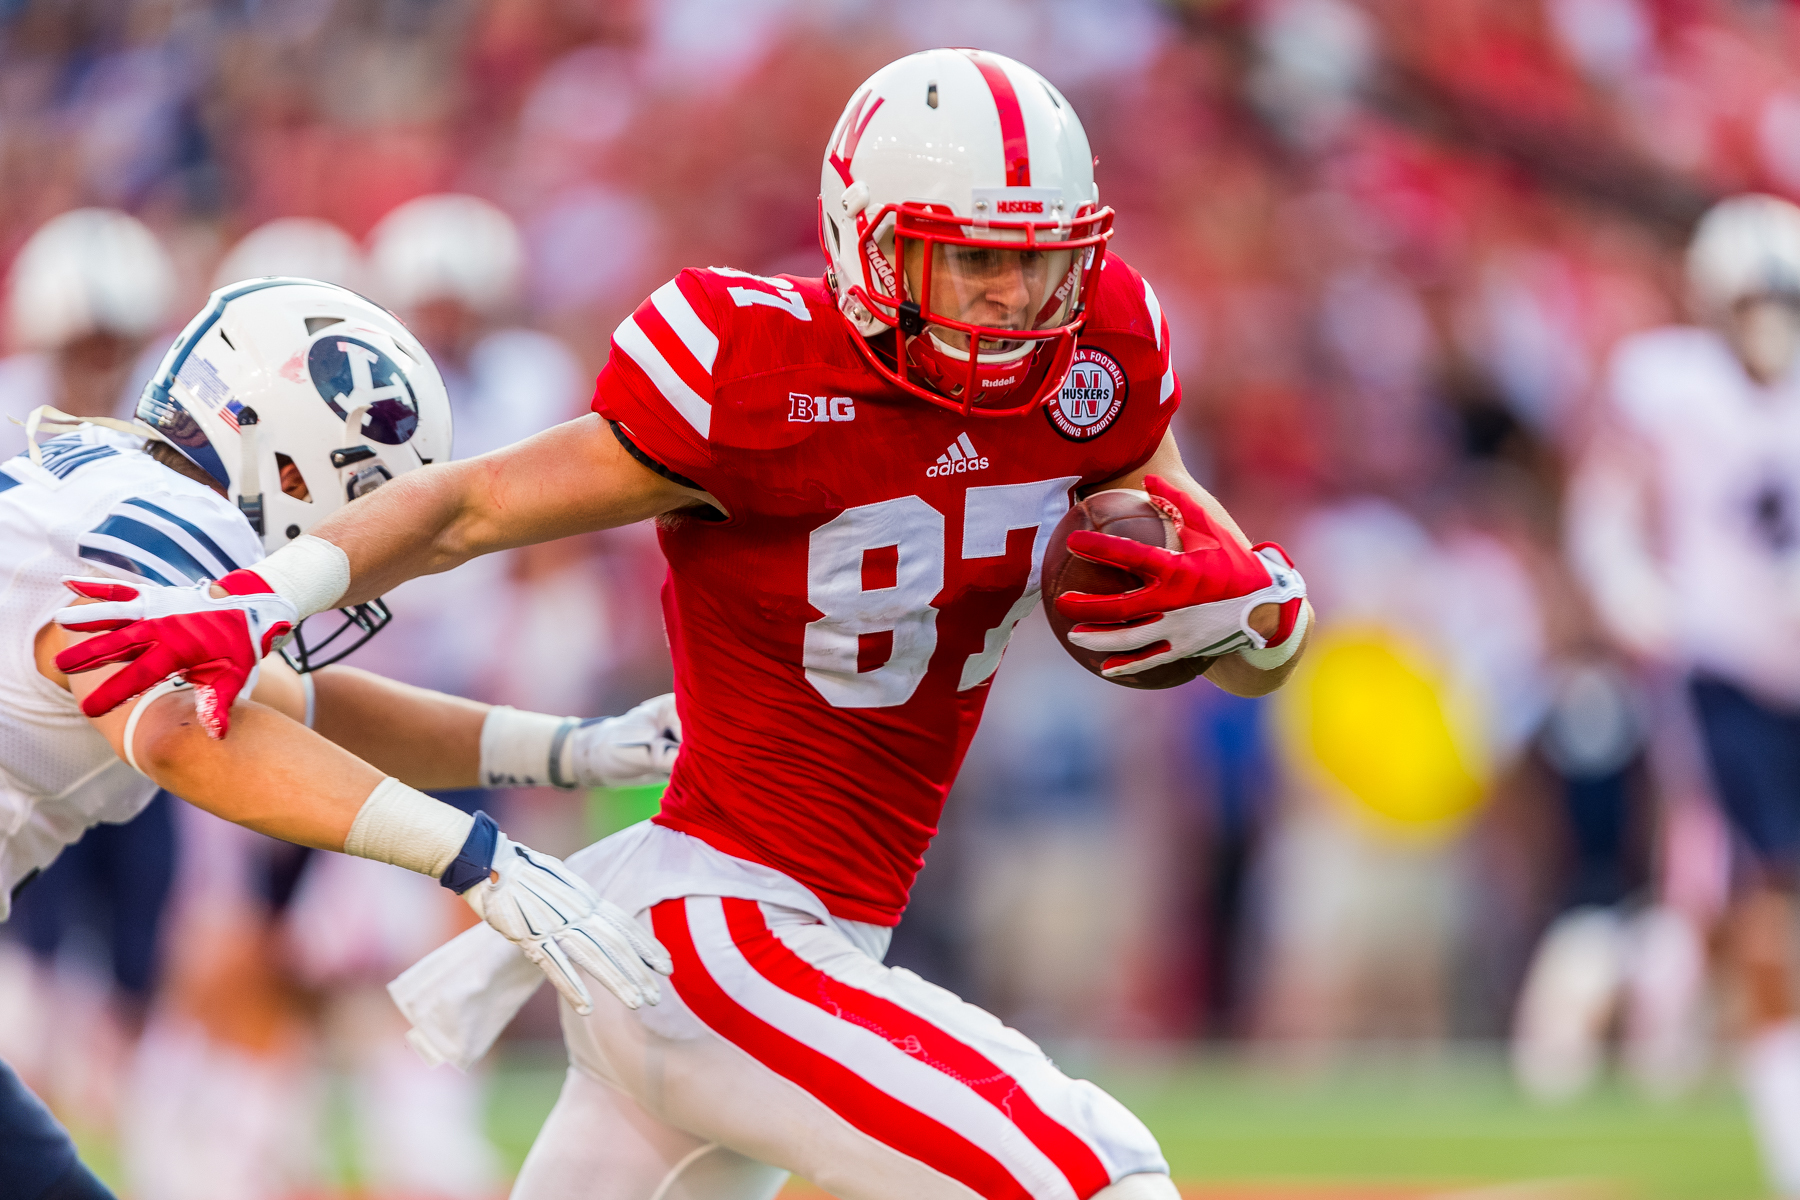 Brandon Reilly #87 of the Nebraska Cornhuskers races down the field after his fourth quarter catch during Nebraska's 33-28 loss to BYU on Sept. 5, 2015. Photo by Aaron Babcock